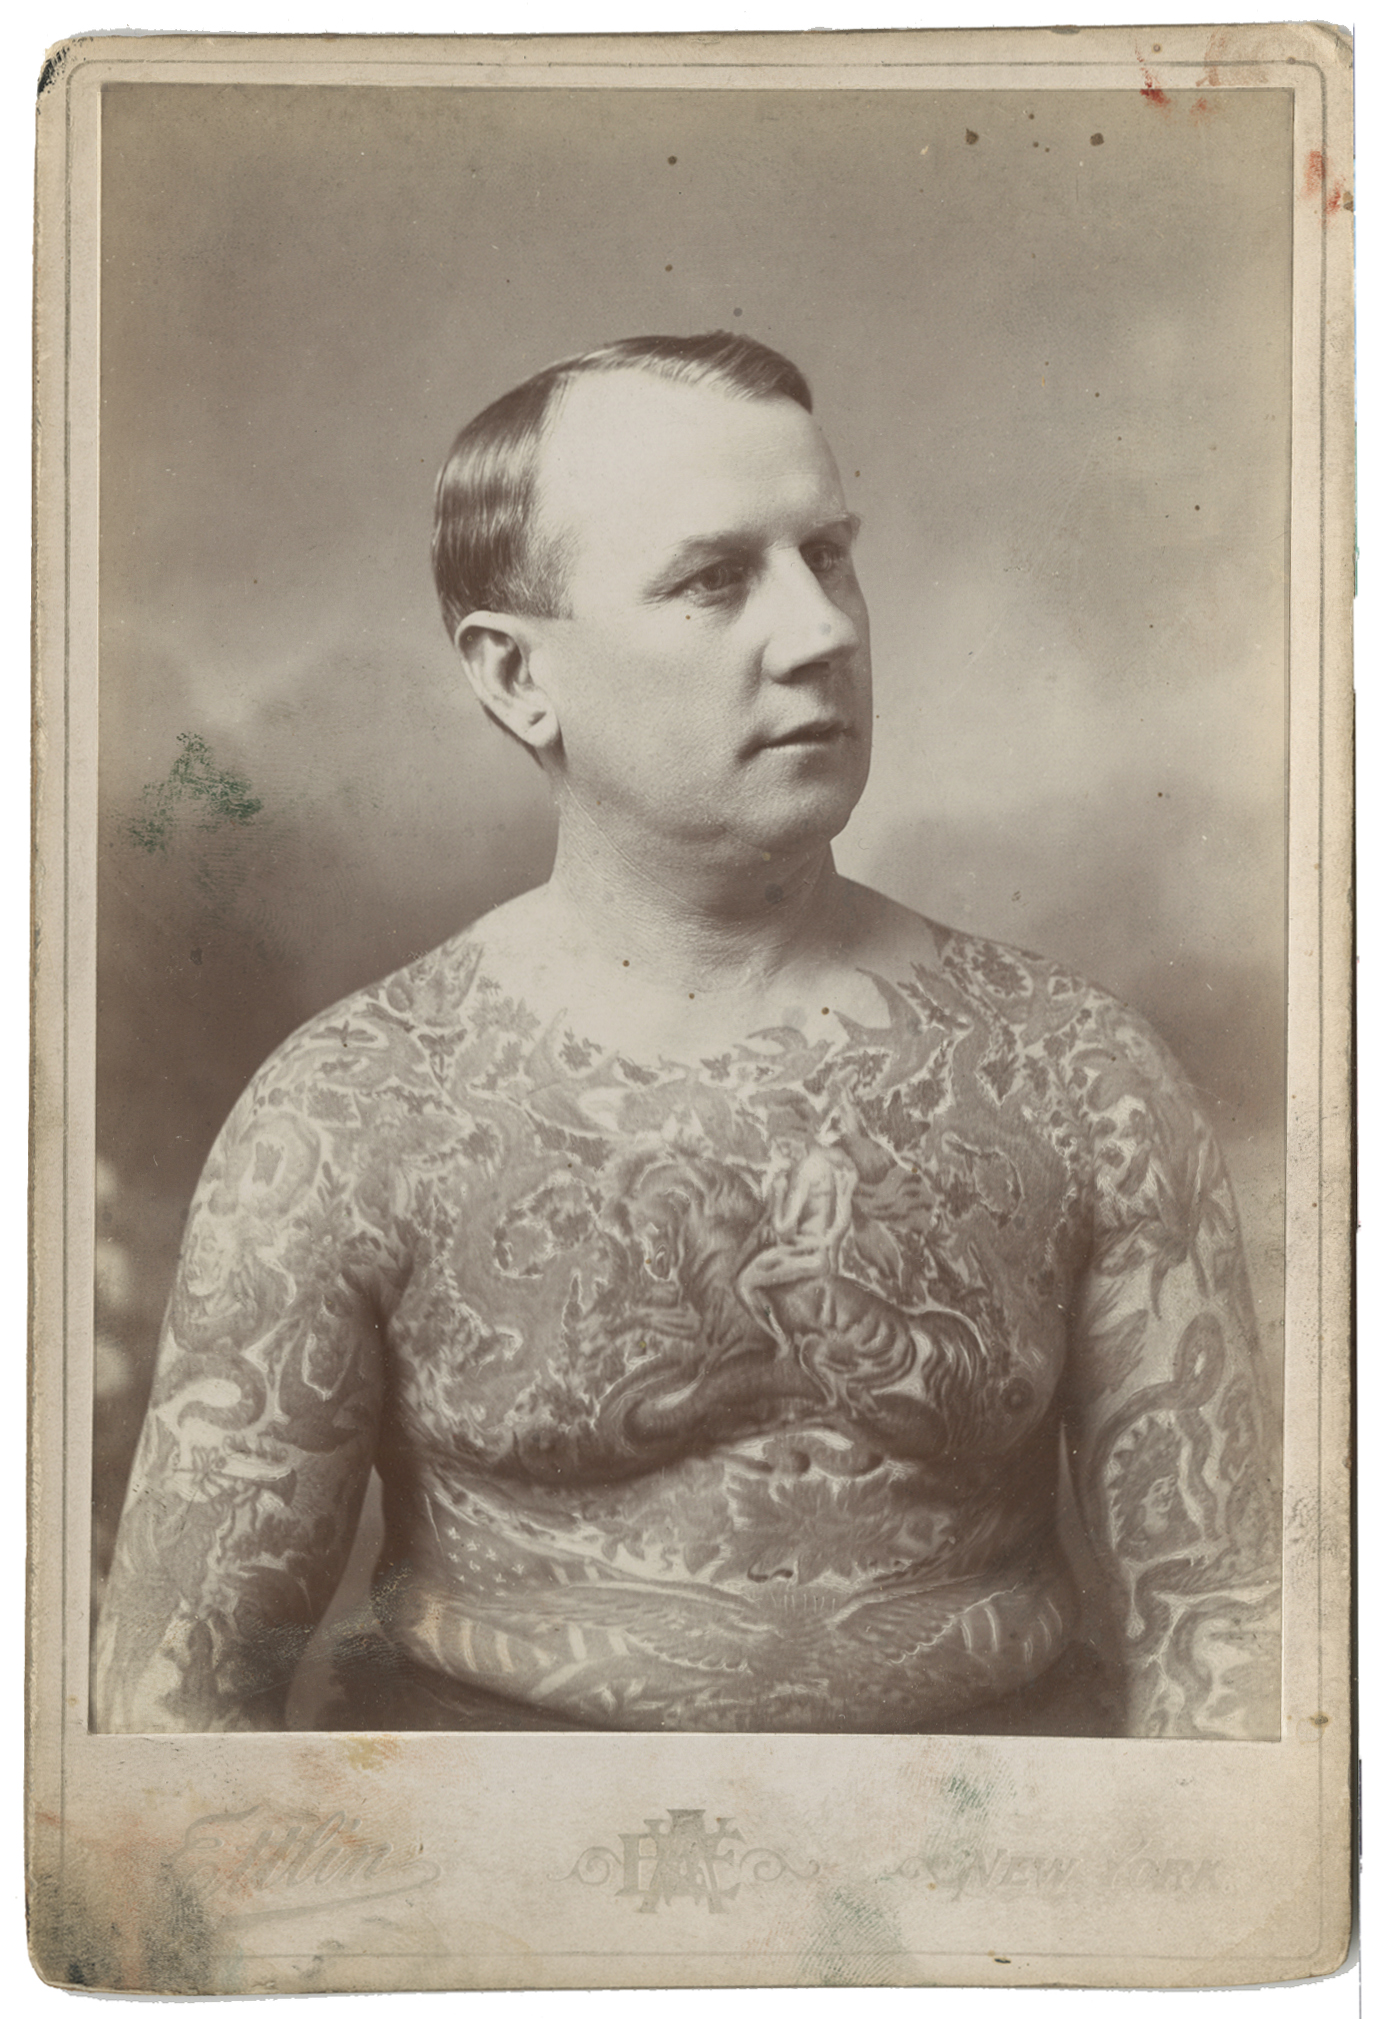 Ed Greenwood, Tattooed by Charlie Wagner and Lew Alberts, Cabinet Card Photograph by William Ettlin, Ettlin's Portraits, 17 Chatham Square, New York, ca. 1903.  Harry Ransom Center, The University of Texas at Austin